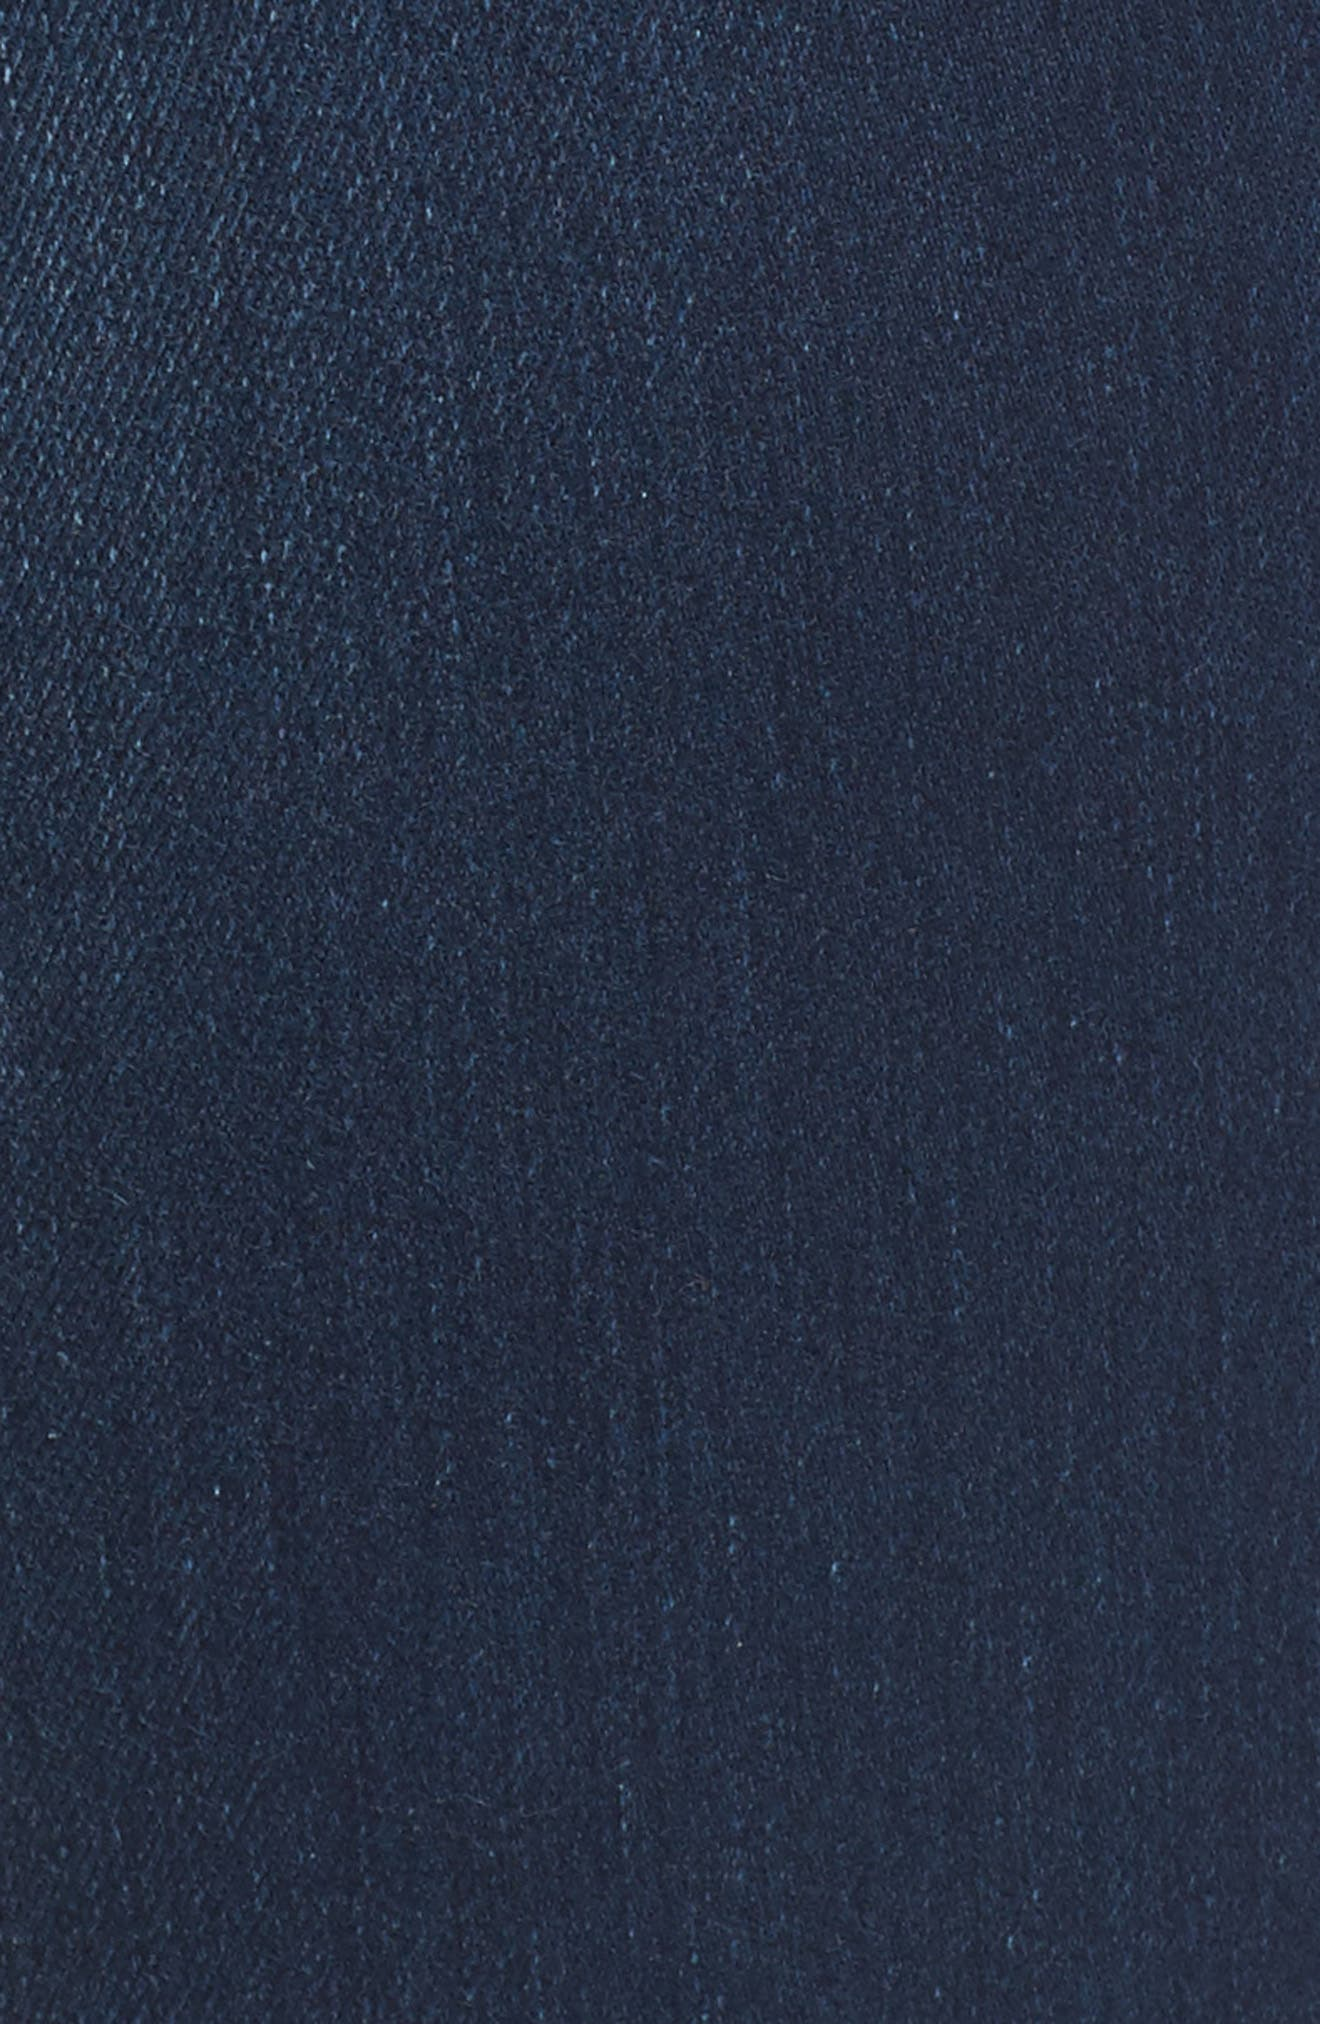 Becca Bootcut Jeans,                             Alternate thumbnail 5, color,                             400